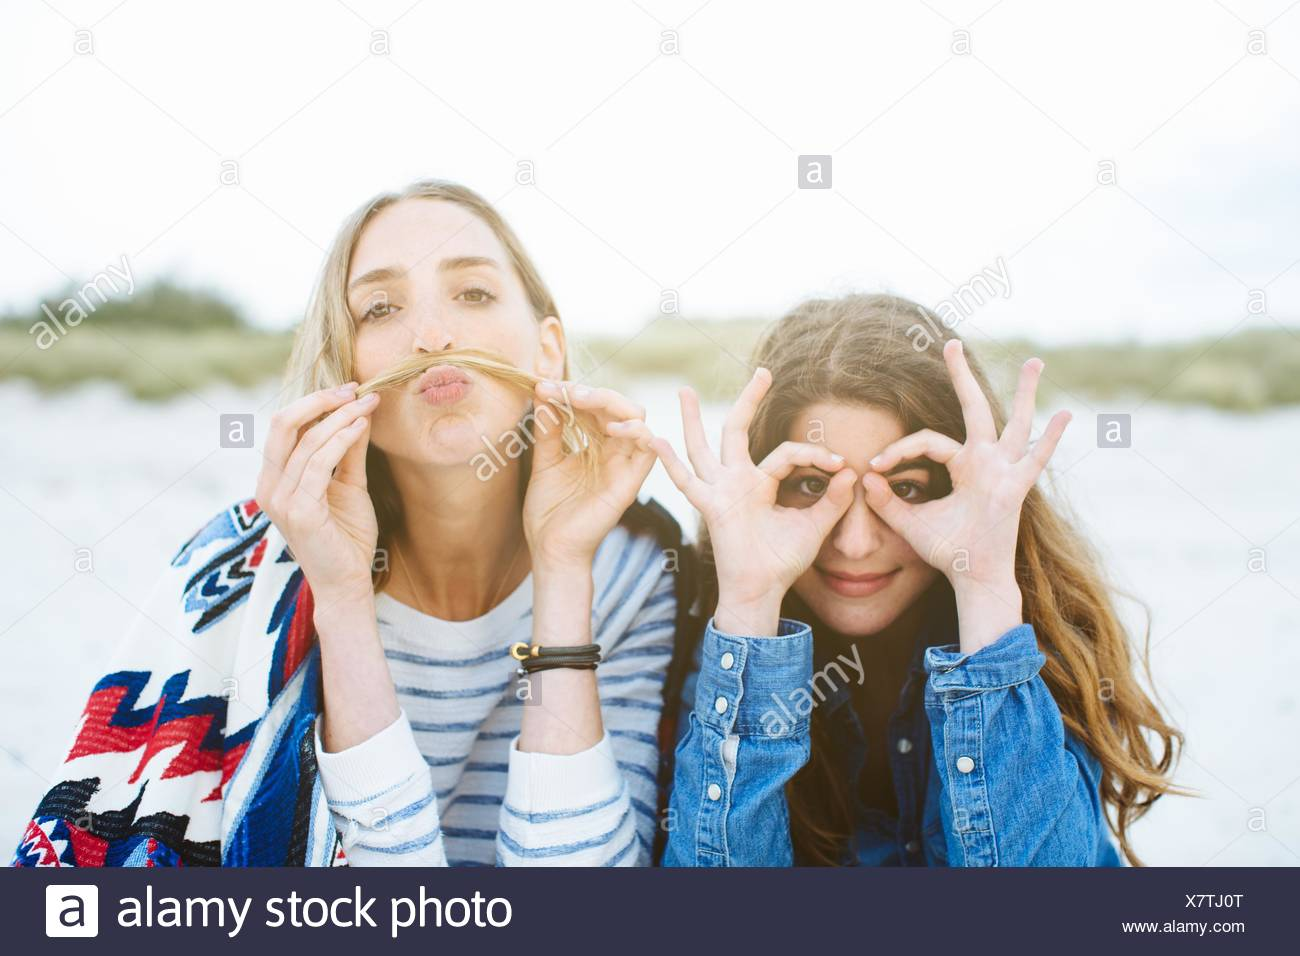 Portrait of two young female friends making moustache and spectacled faces on beach - Stock Image